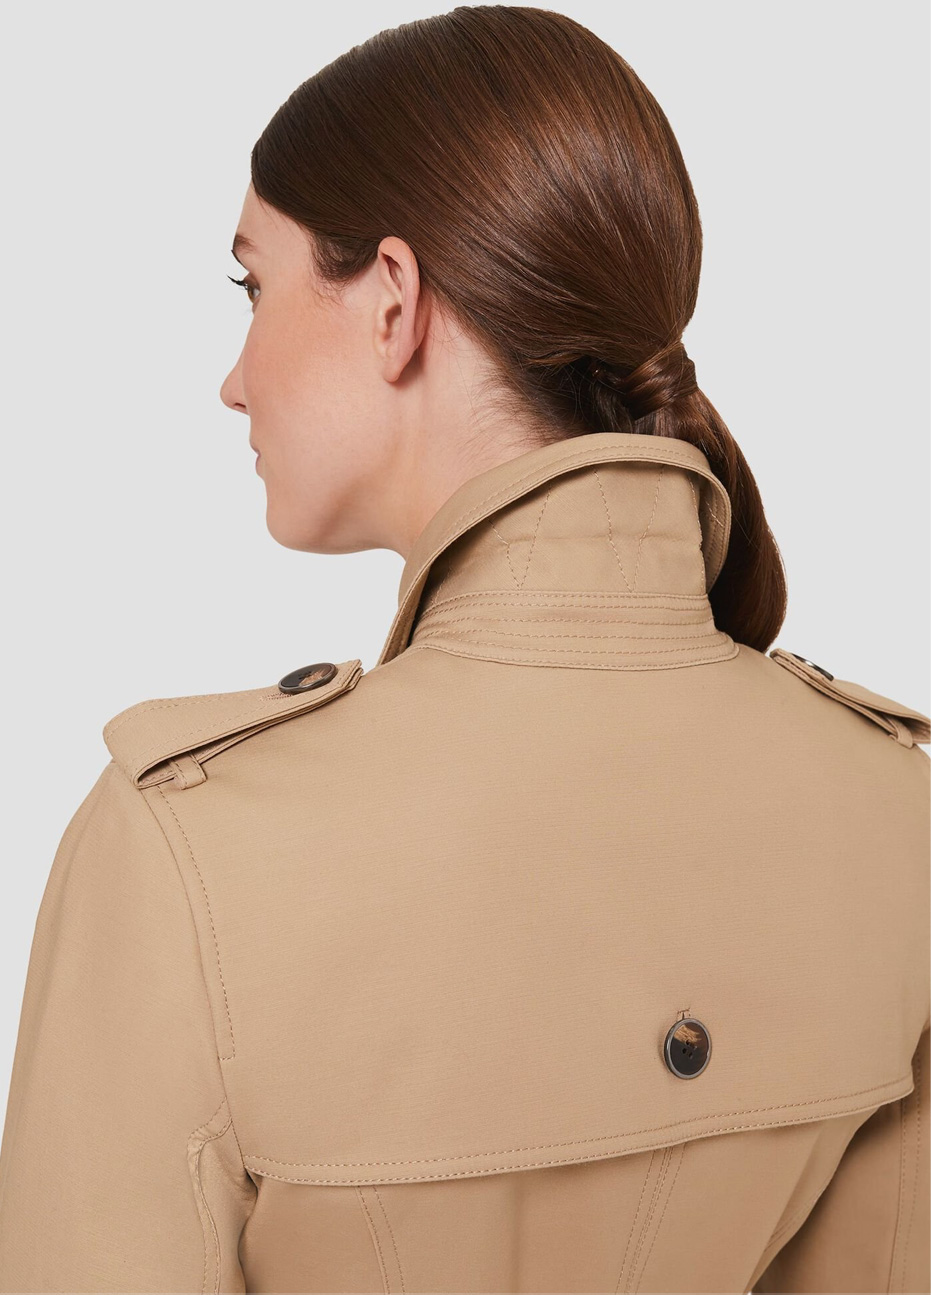 The back of a Hobbs model wearing a beige trench coat.